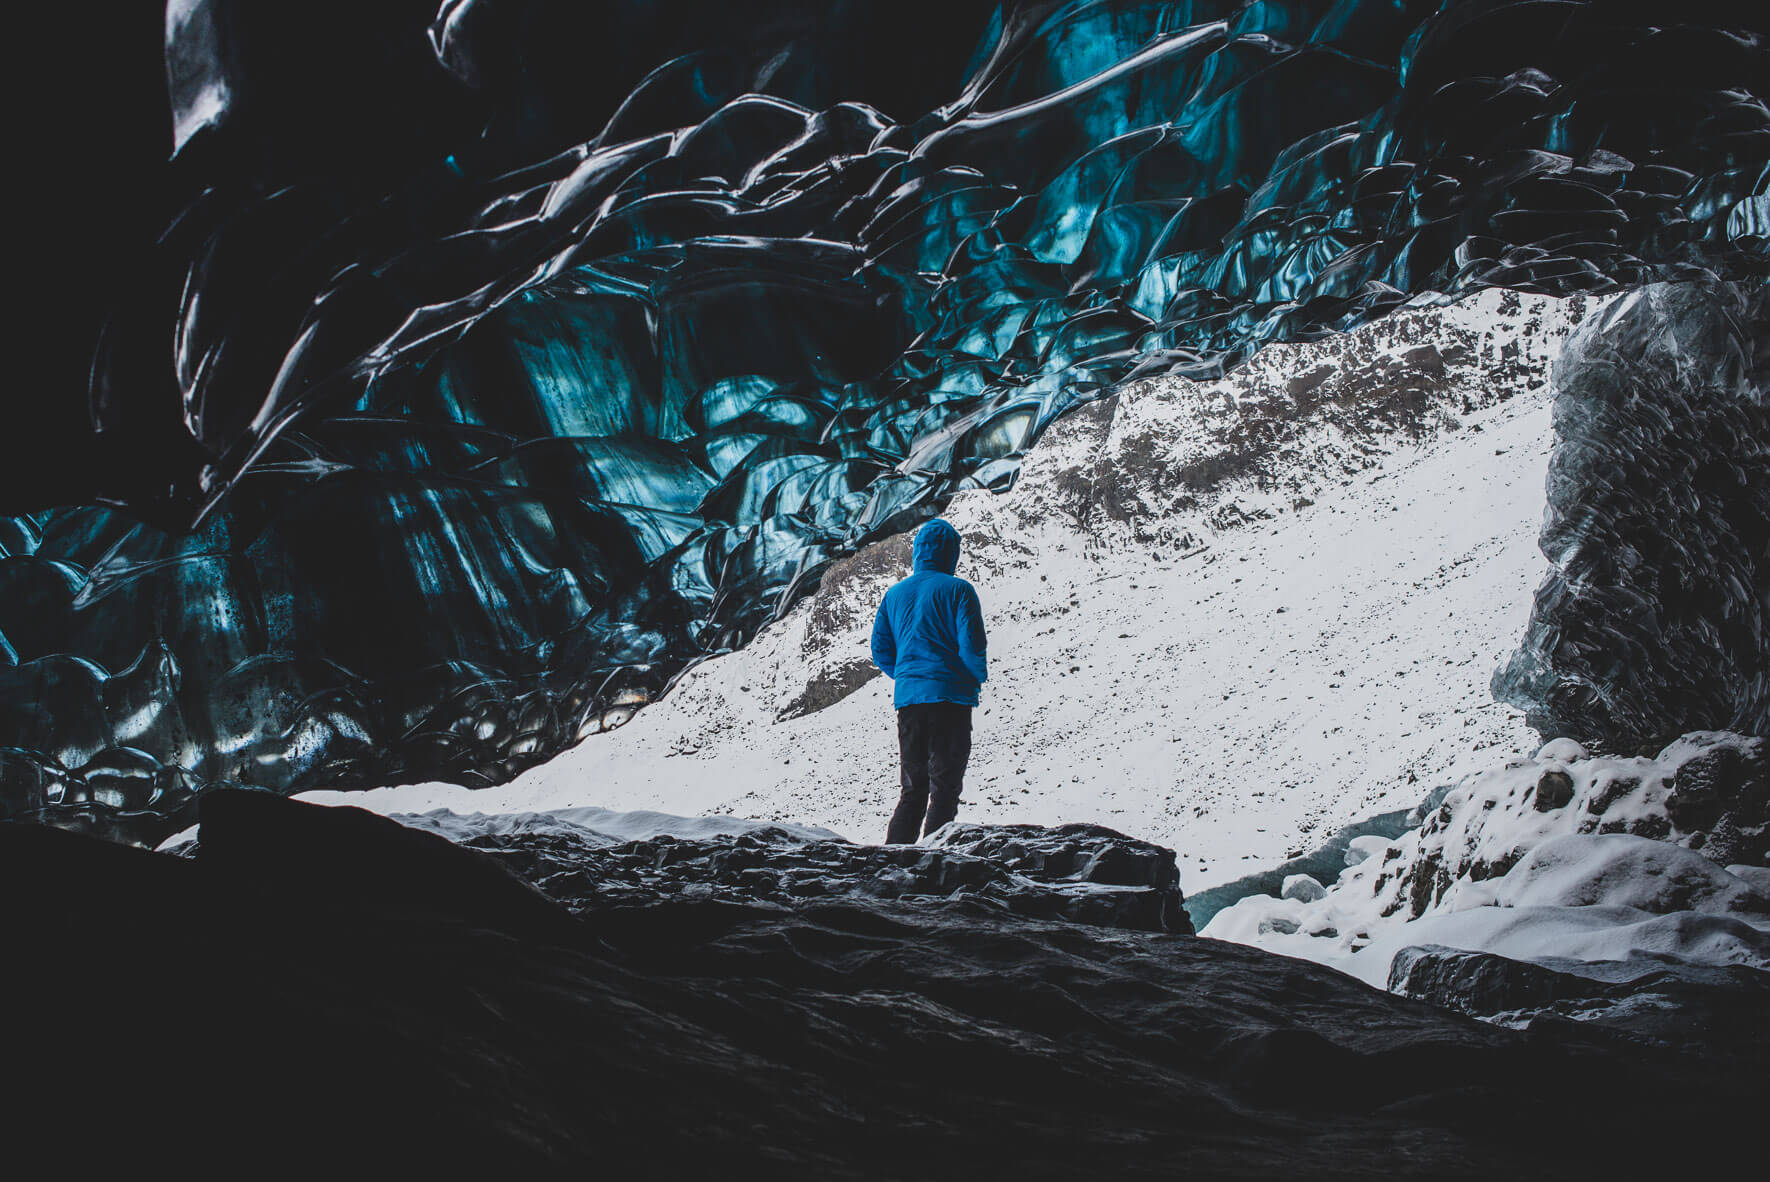 Winter fashion shooting in glacier cave in Iceland